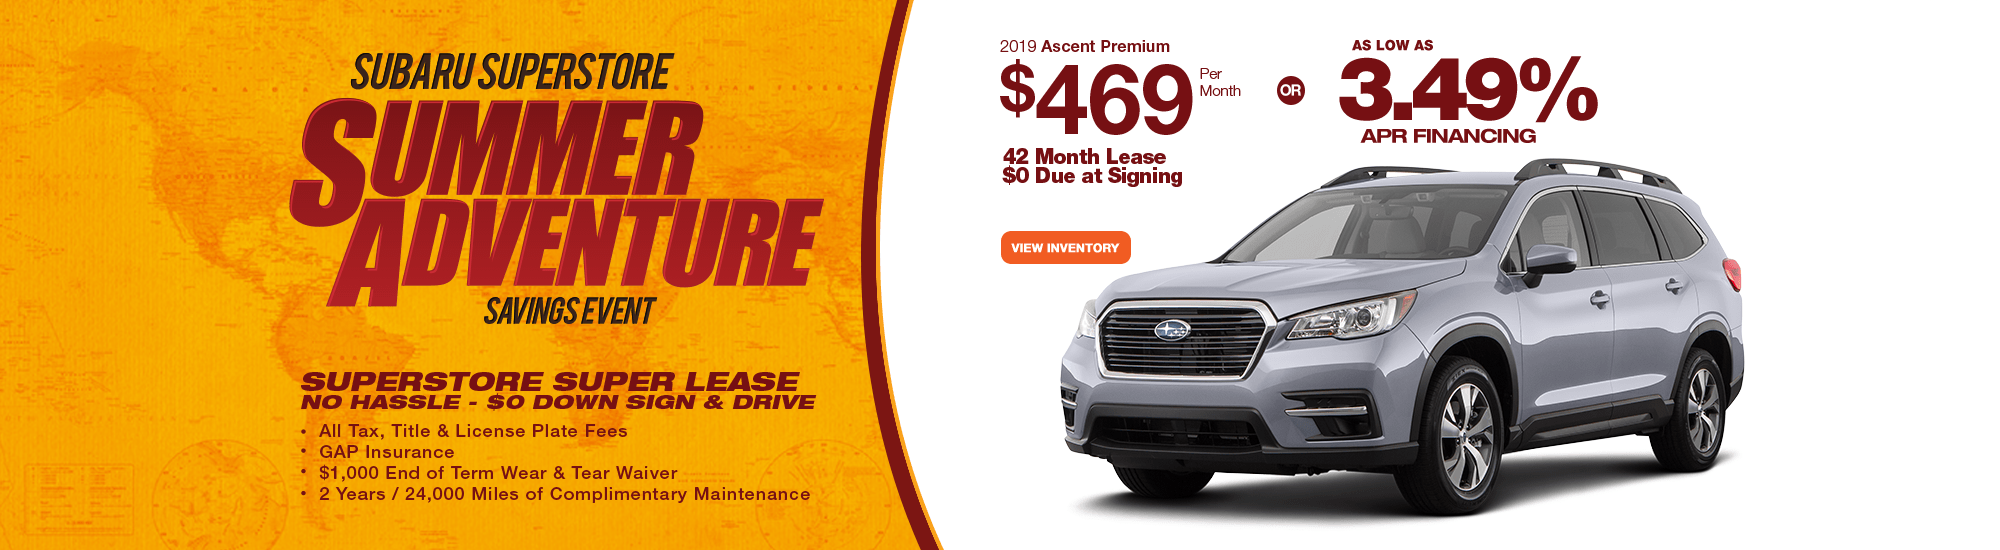 2019 Ascent Premium Lease or Finance Special at Subaru Superstore of Chandler